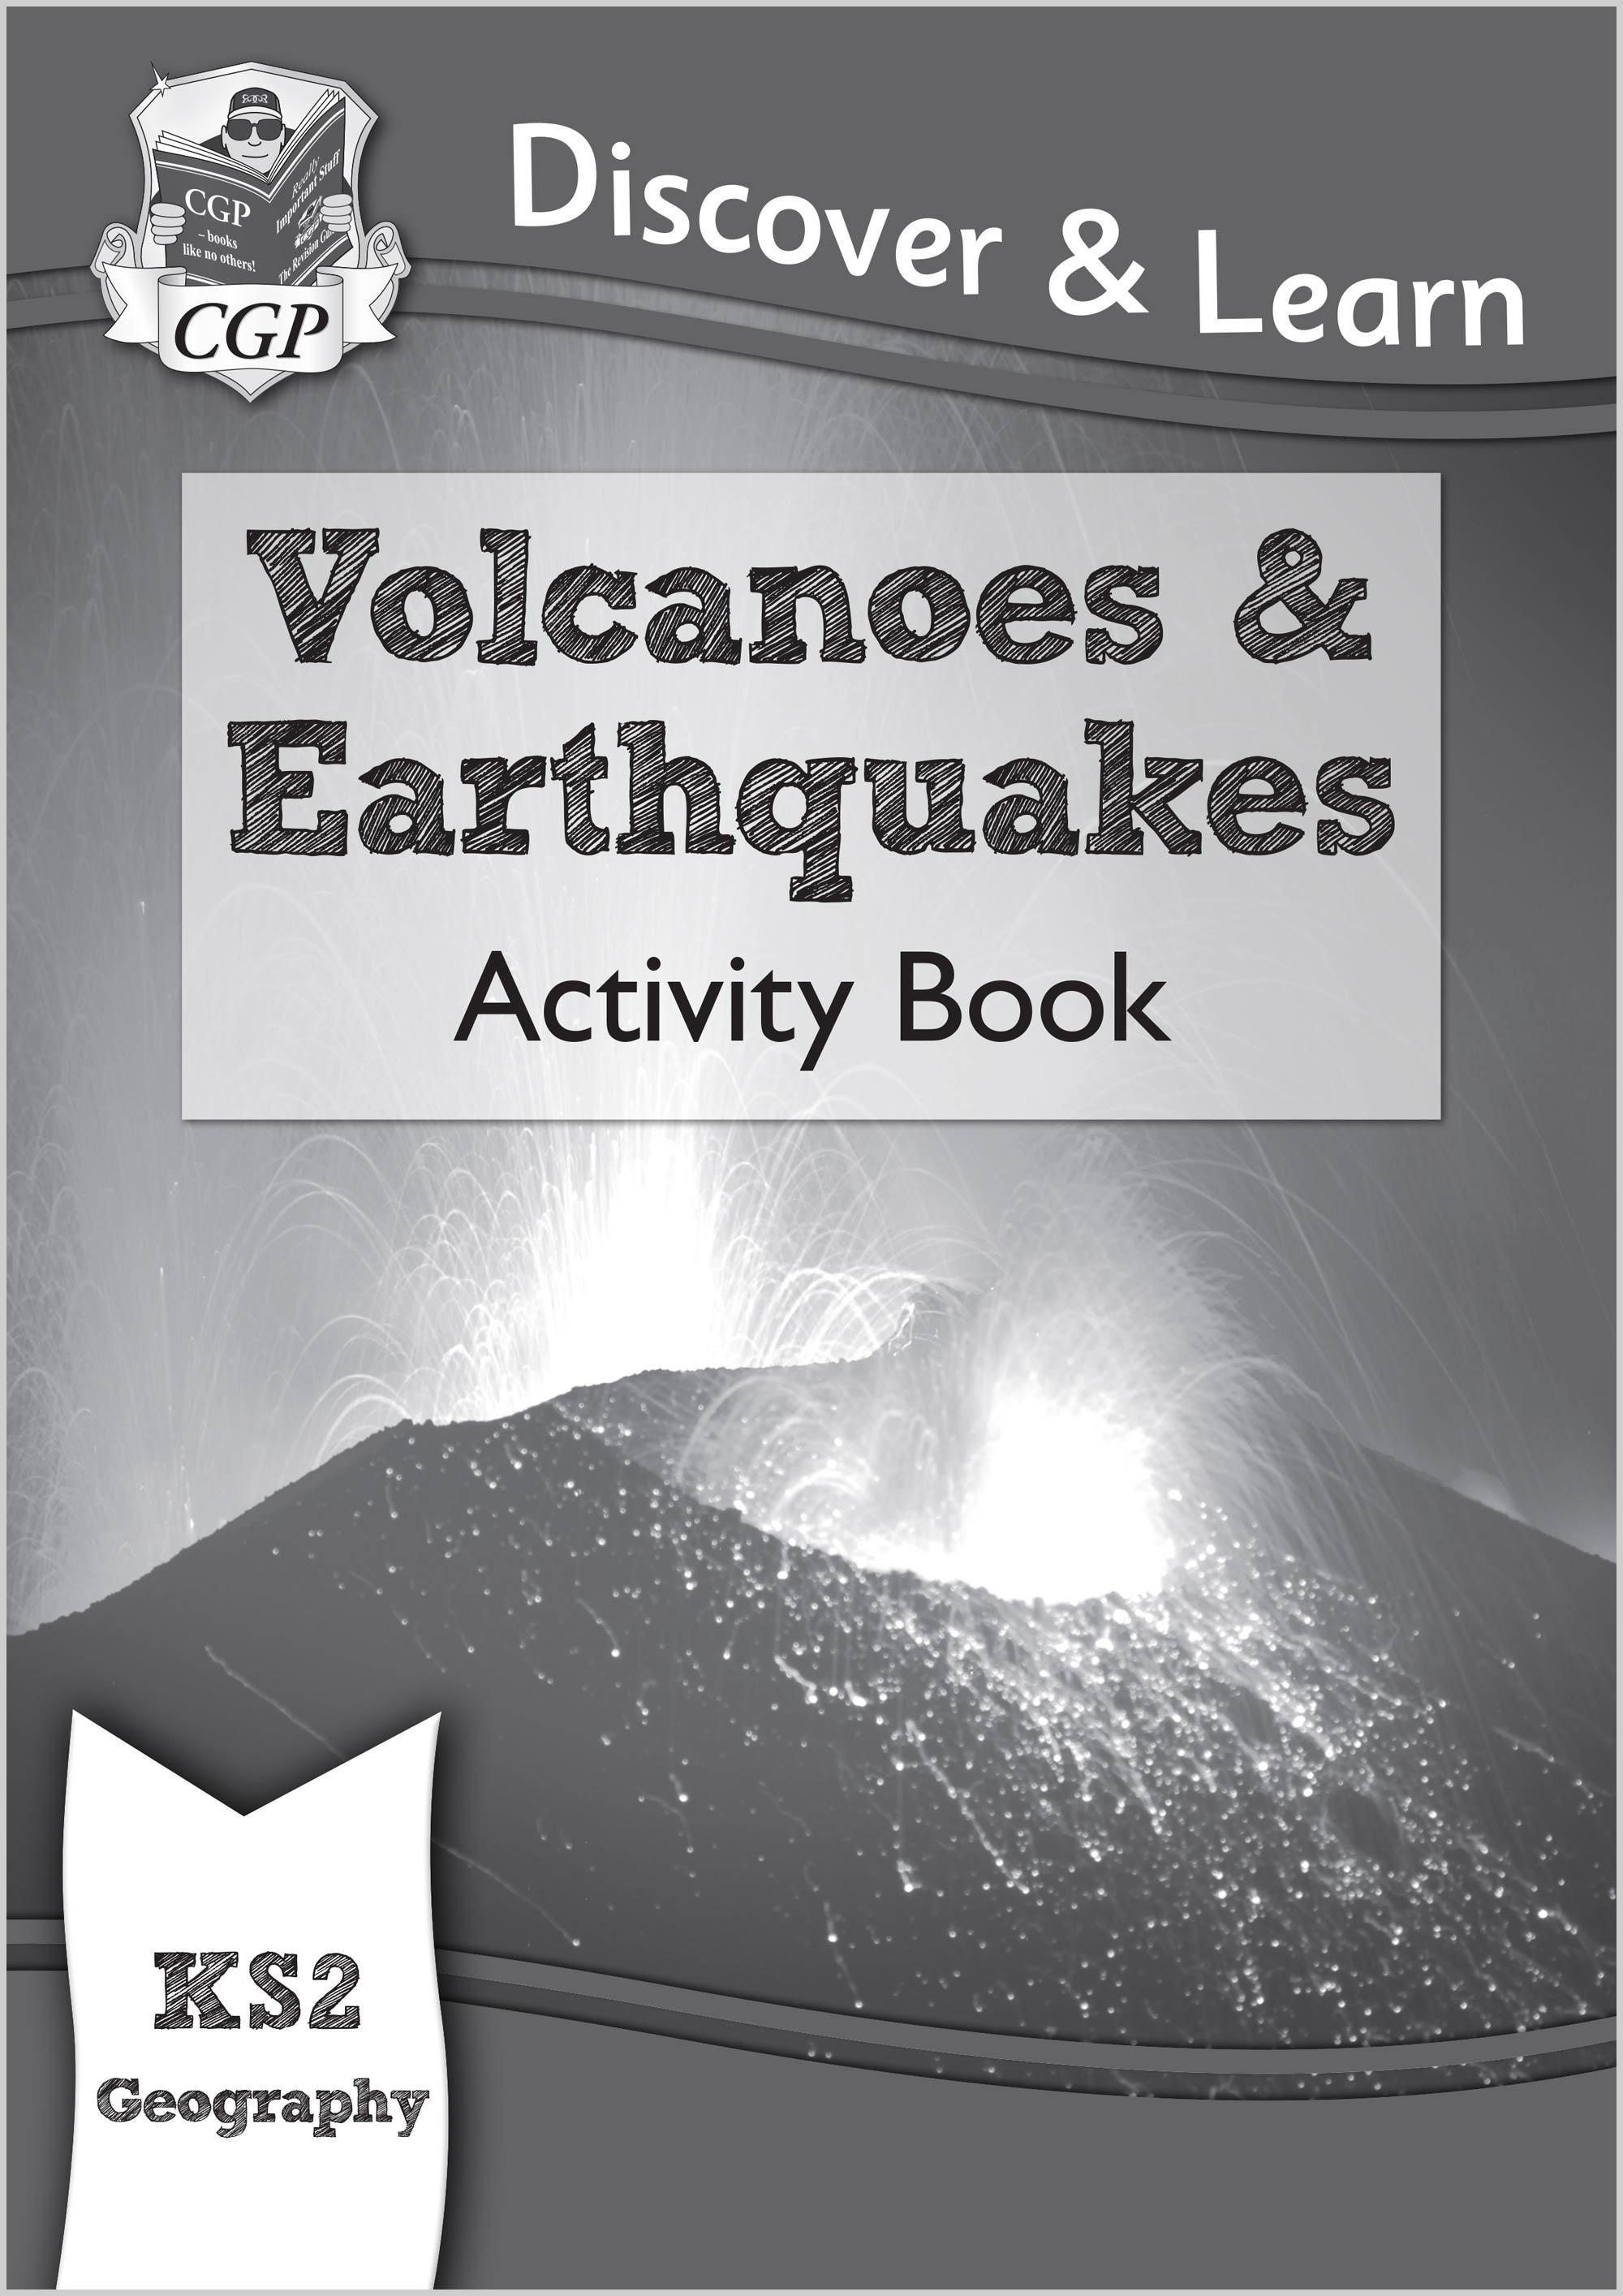 GVW21 - KS2 Discover & Learn: Geography - Volcanoes and Earthquakes Activity Book